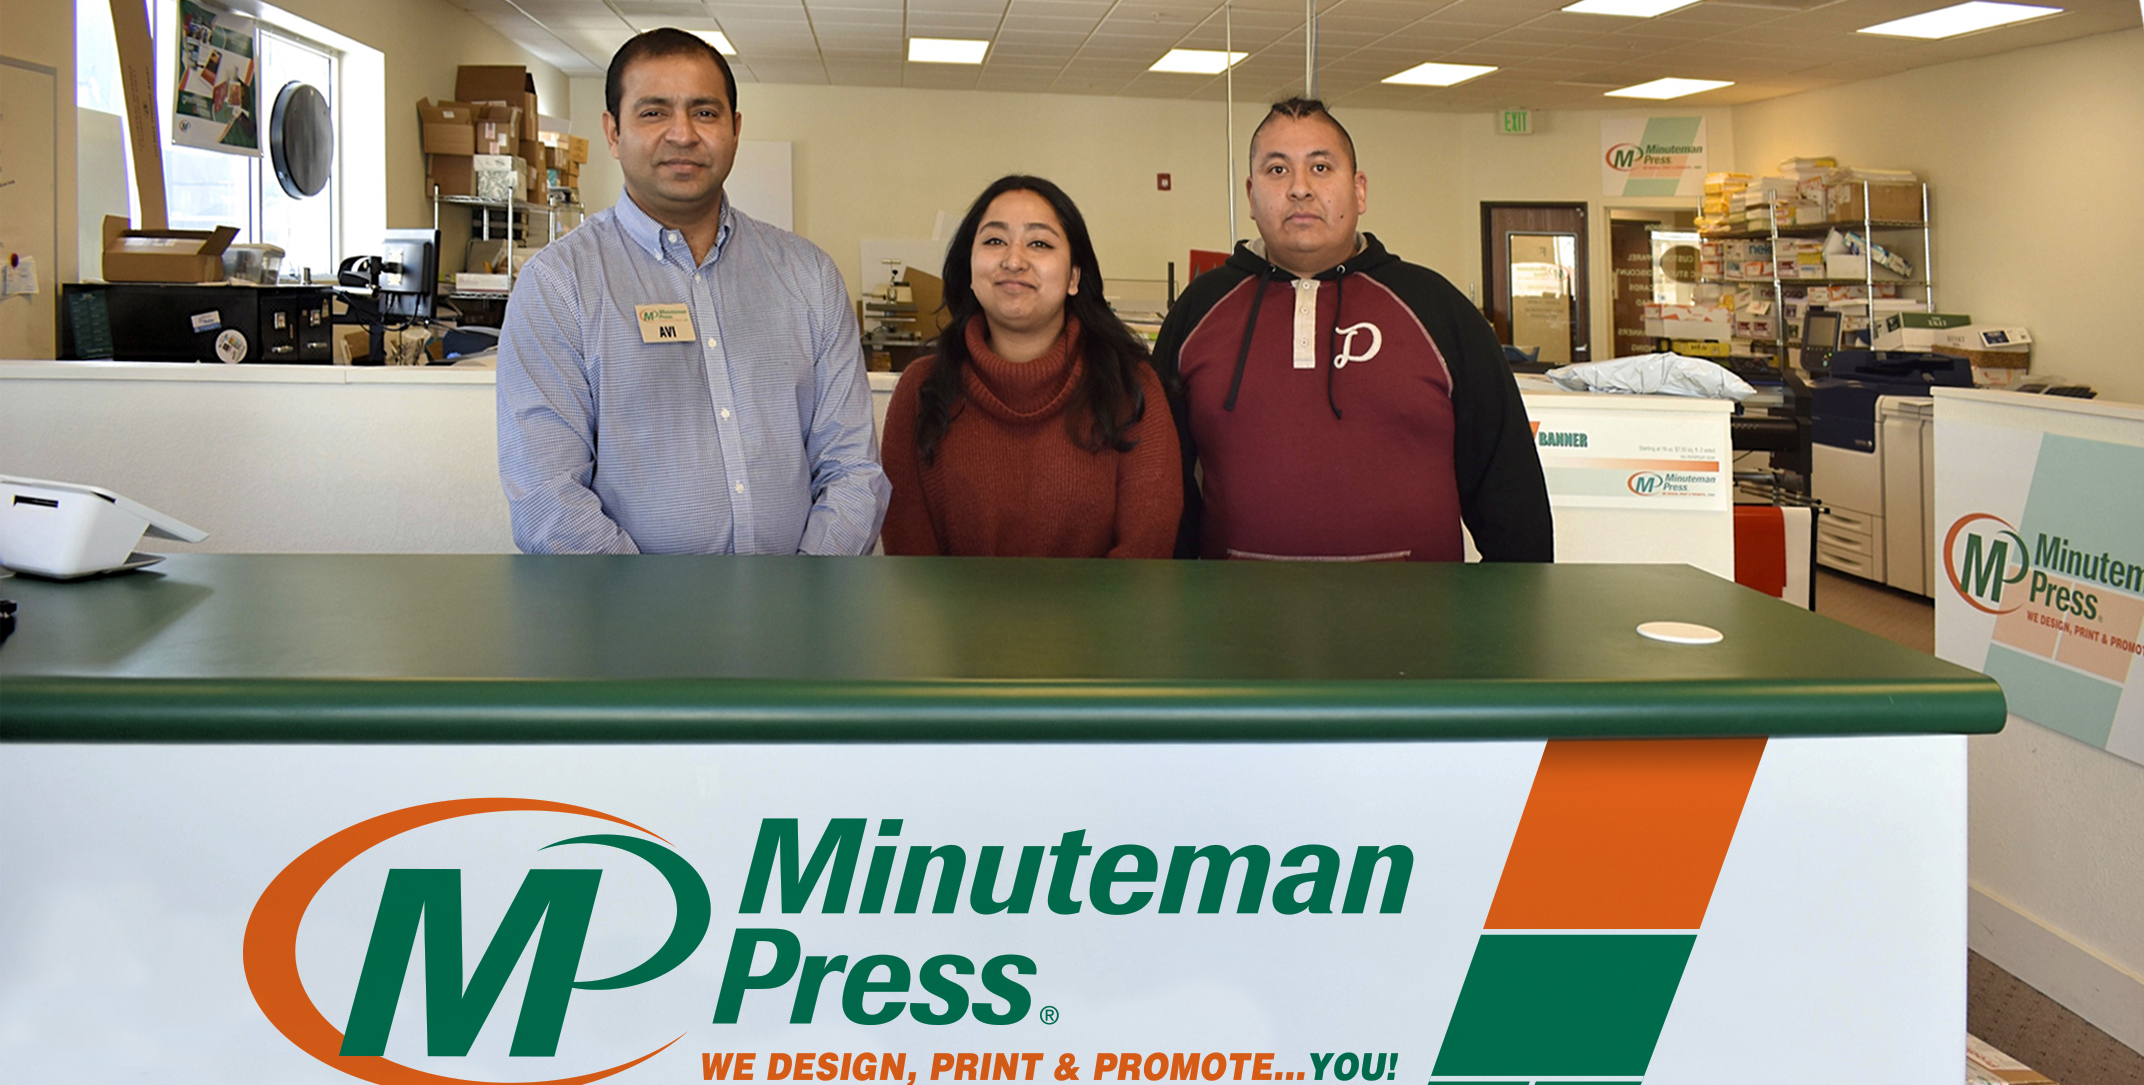 Avi Kumar (left) owns the Minuteman Press design, marketing, and printing franchise in Greeley, Colorado.